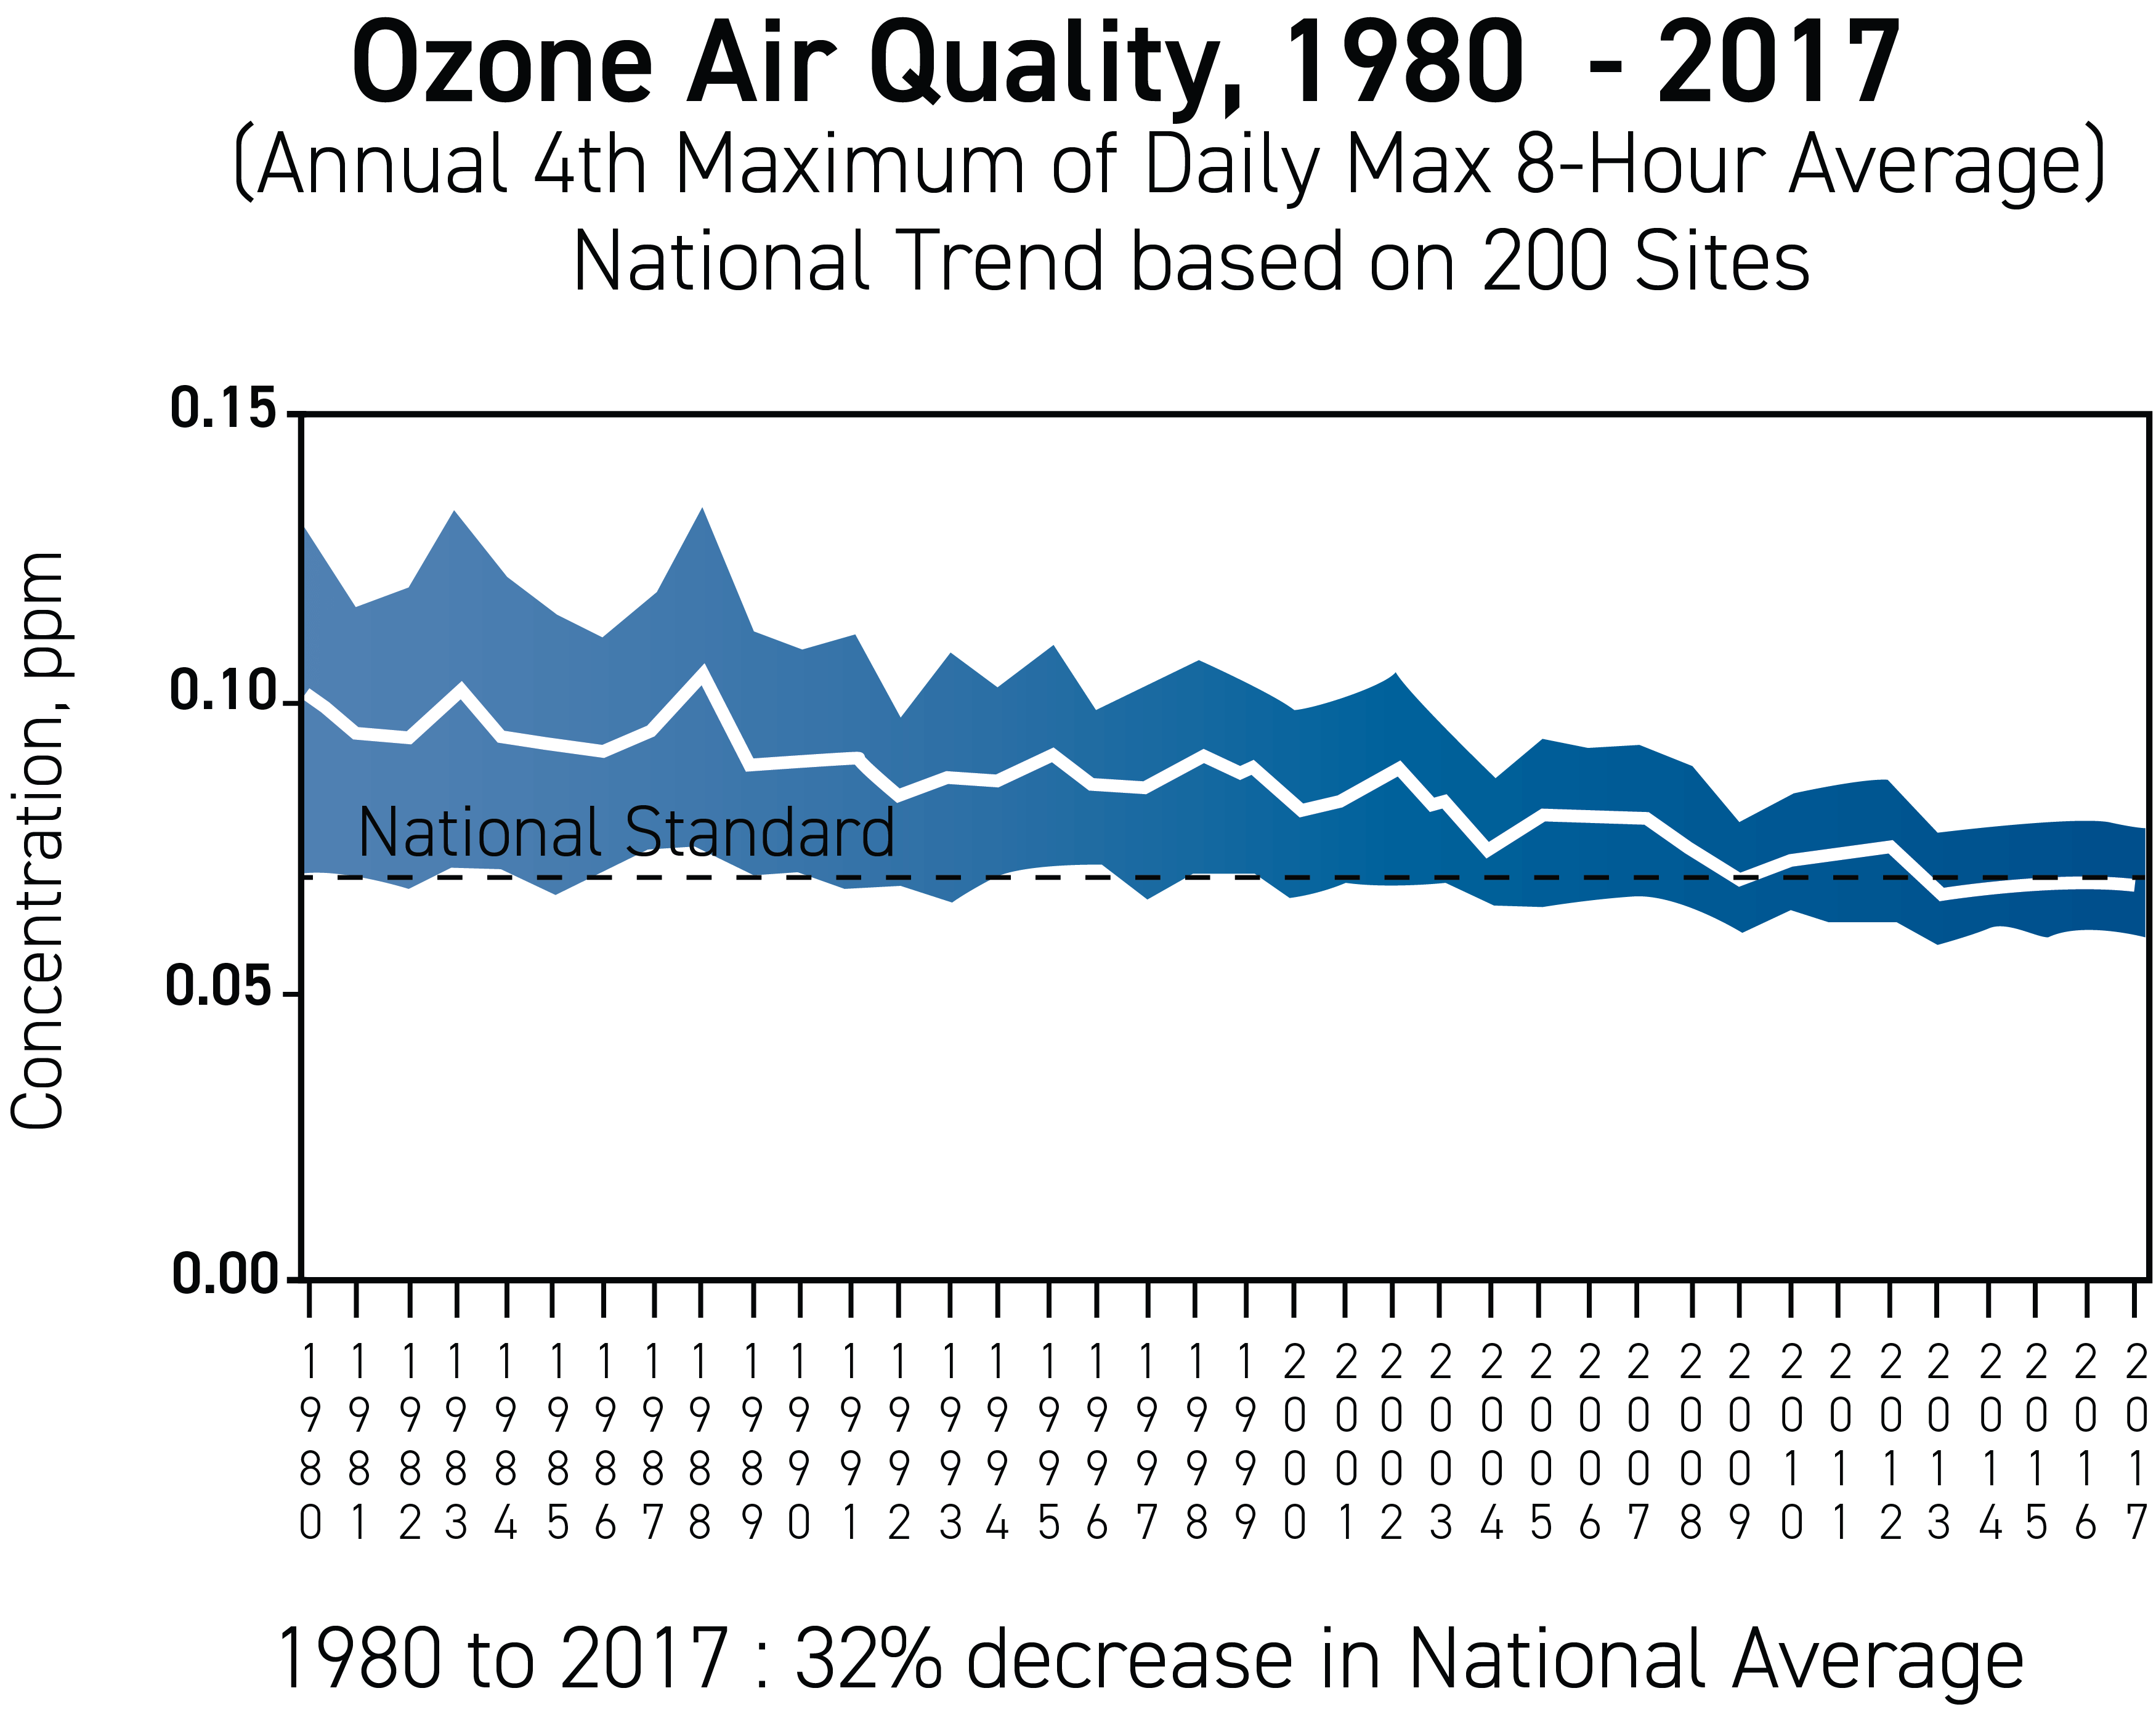 Figure 2. Ozone air quality over time.